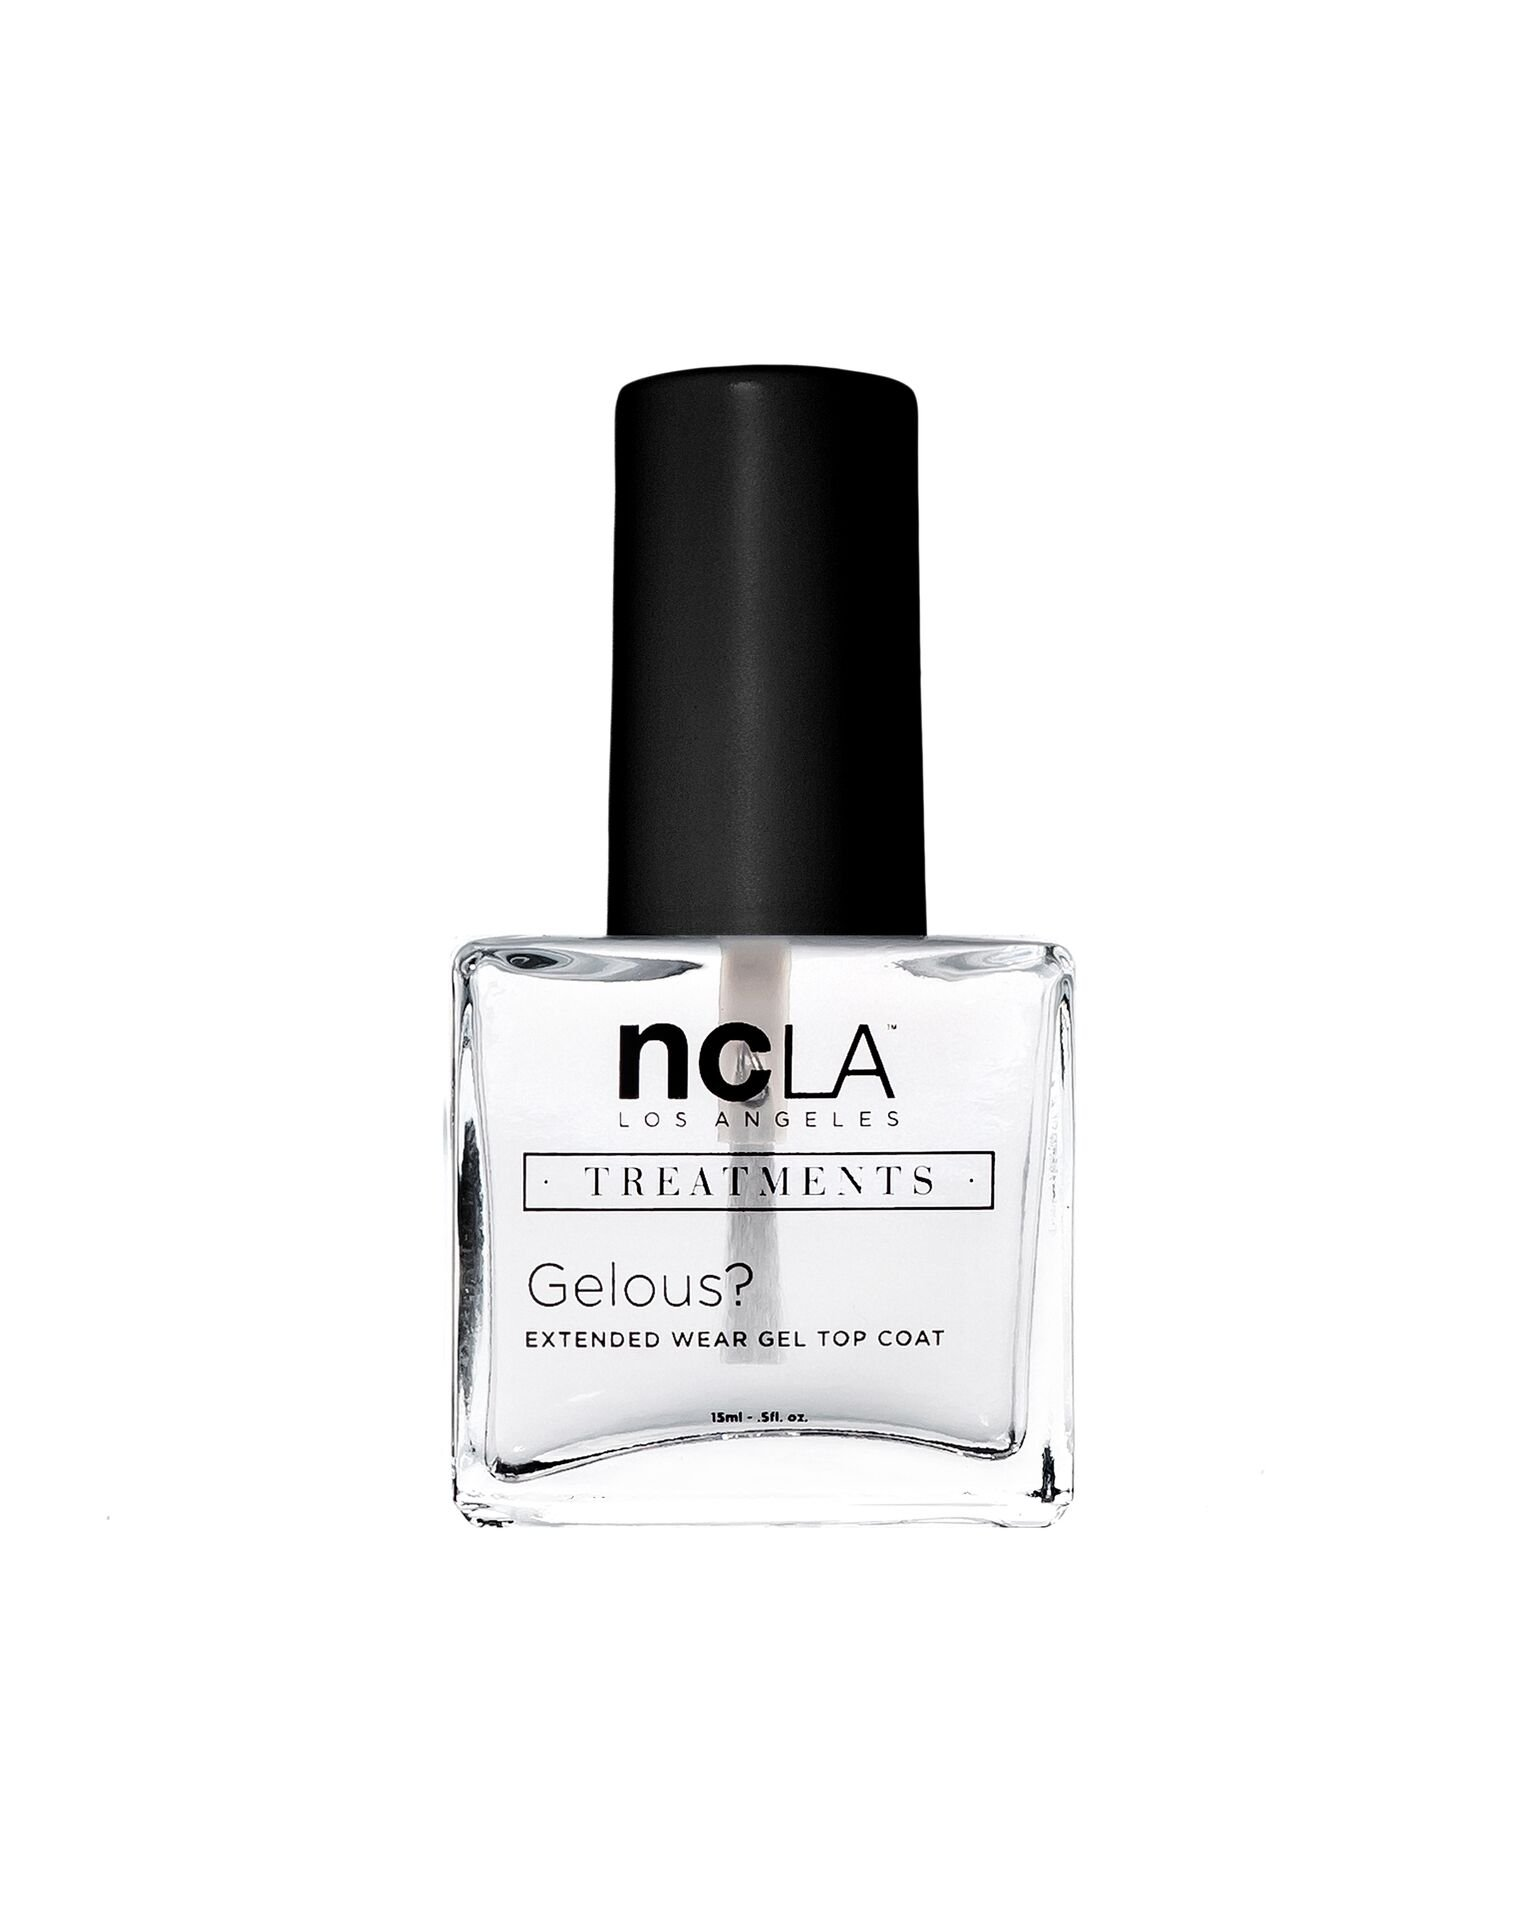 NCLA Gelous?, 1 Ounce by NCLA